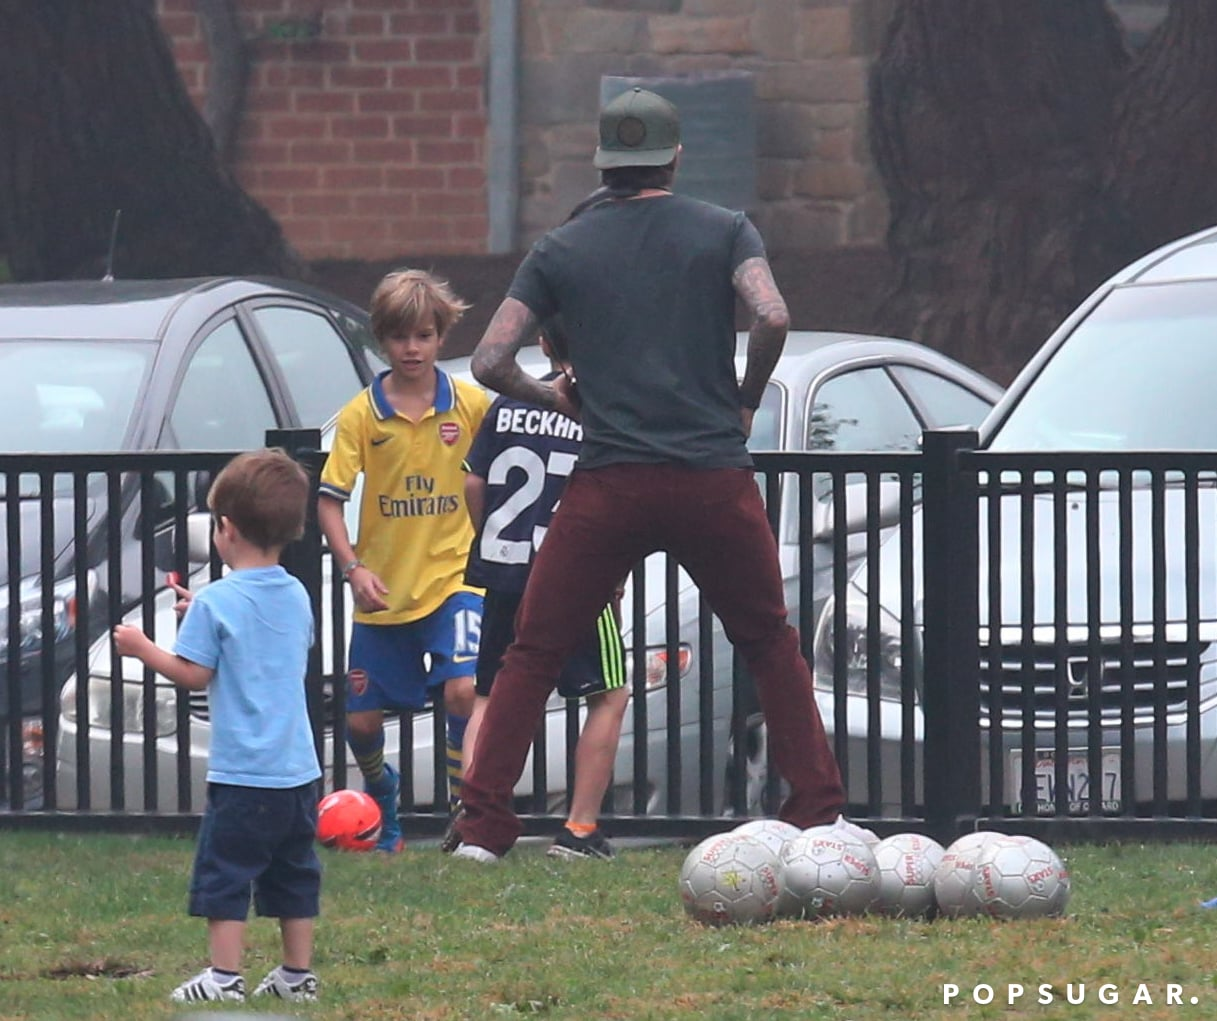 David Beckham hit the field with his sons, playing soccer while his wife, Victoria Beckham, stood on the sidelines.